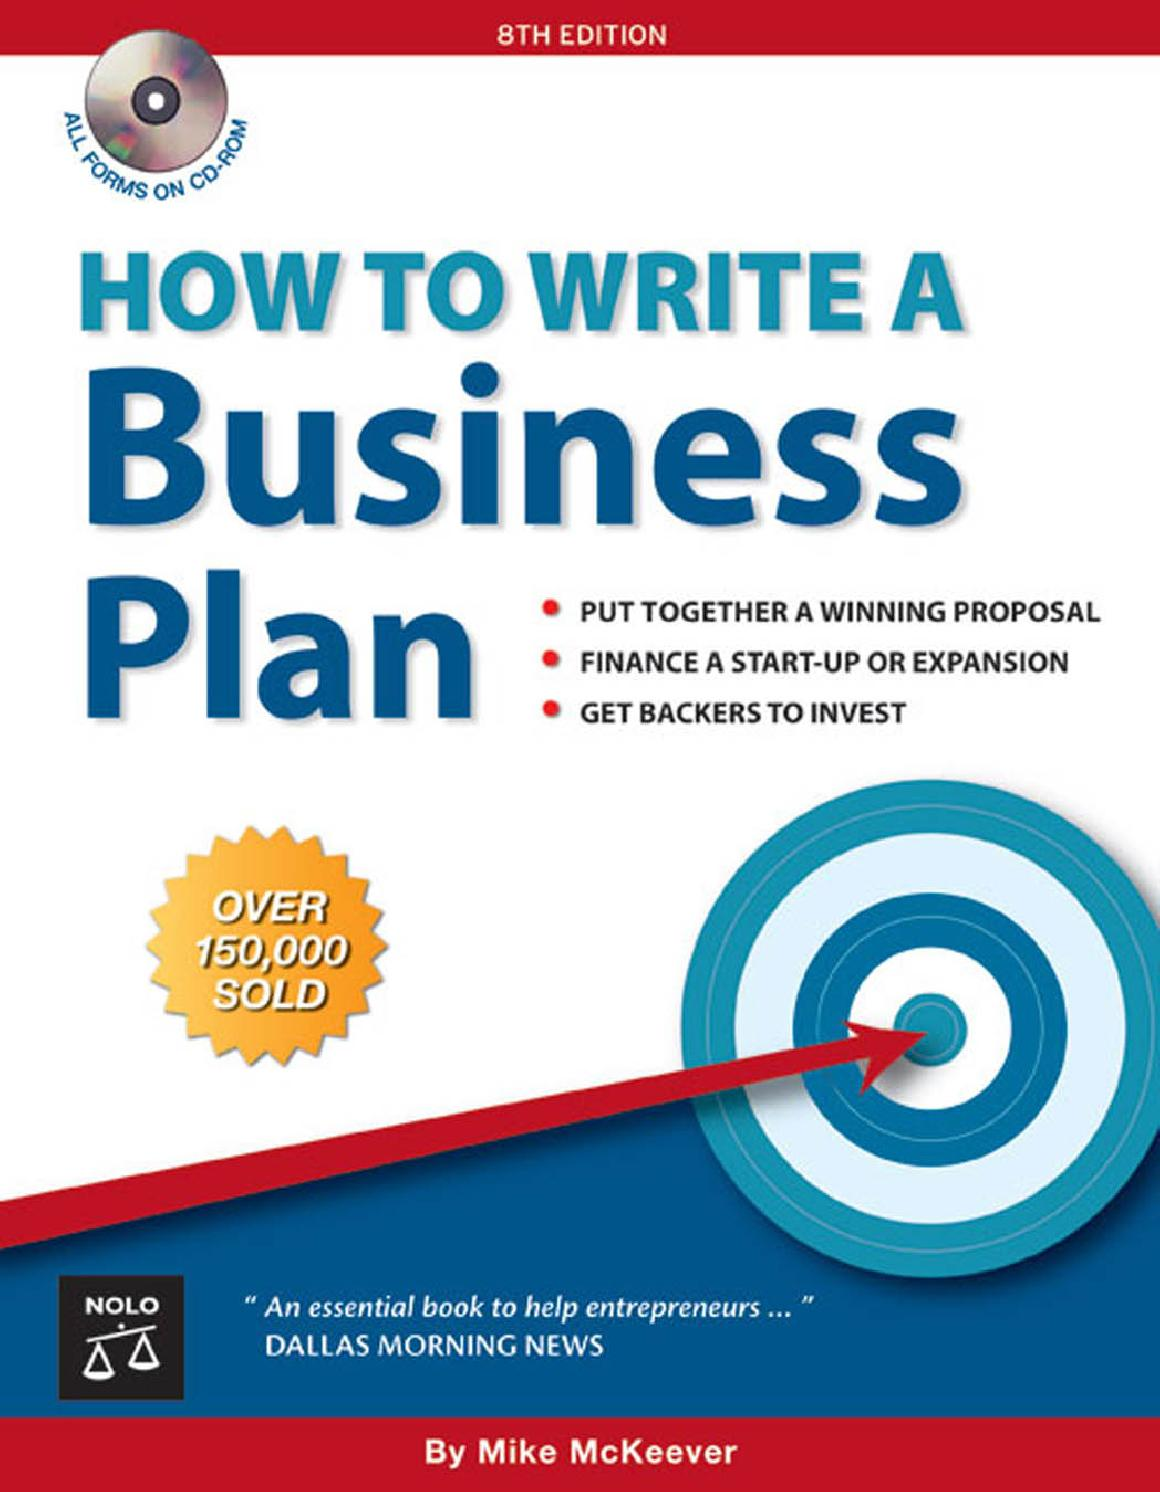 How write a business plan